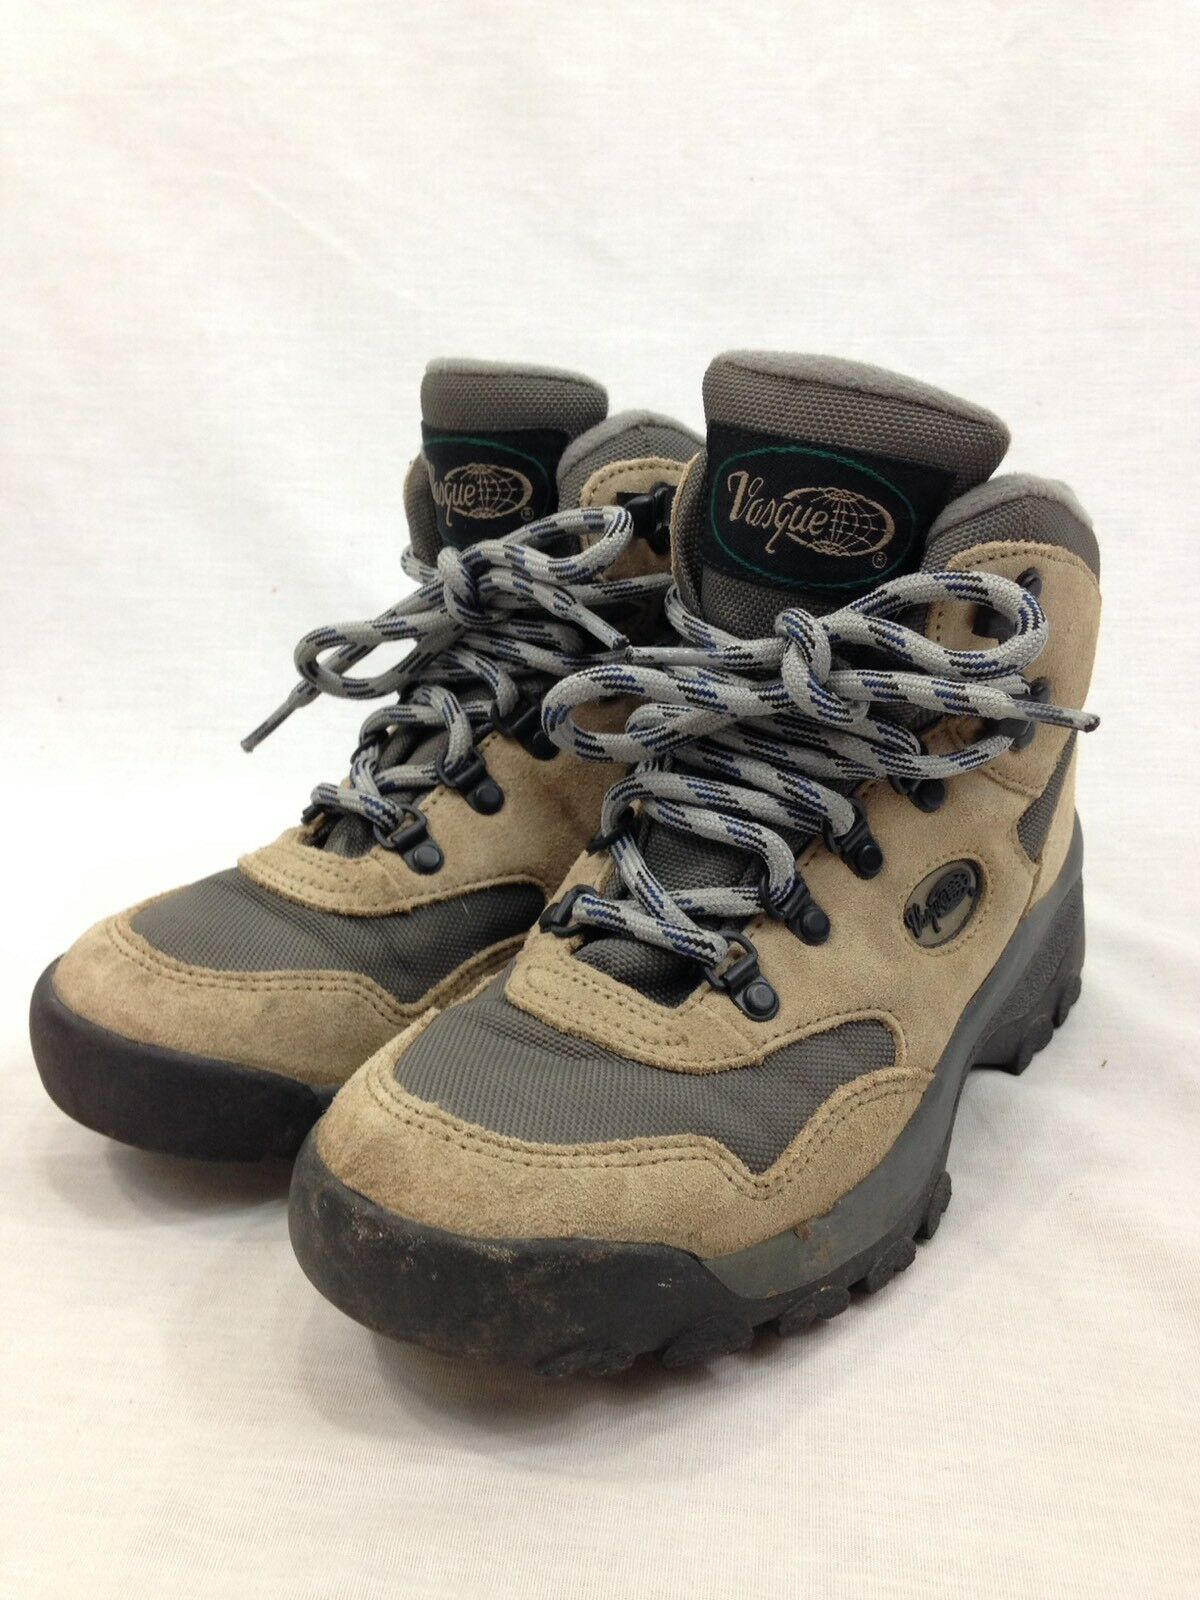 Vasque Hiking Stiefel Damenschuhe 7.5 Beige grau Lace Up Ankle Outdoor Adventure